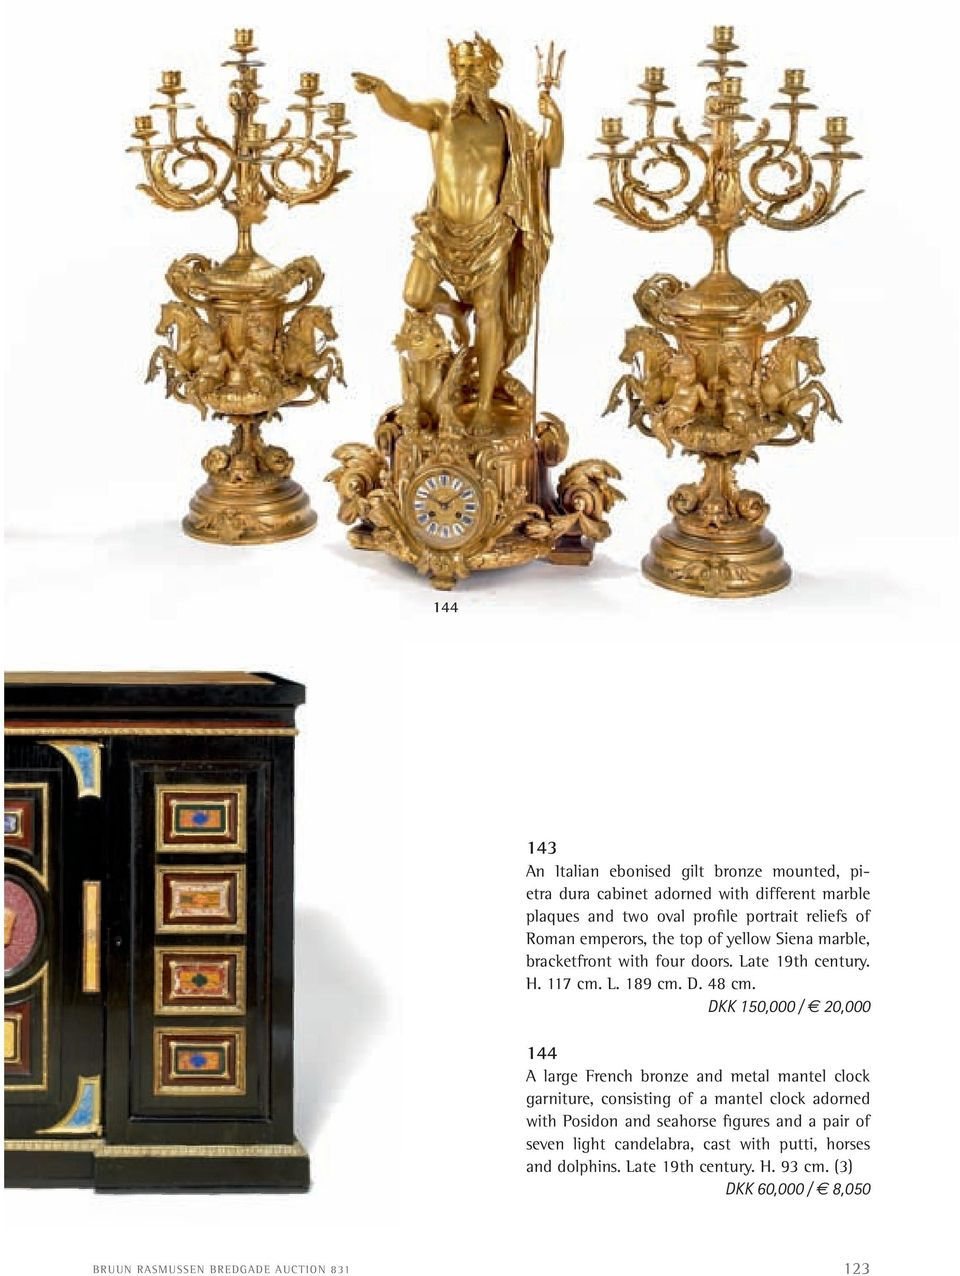 DKK 150,000 / 20,000 144 a large french bronze and metal mantel clock garniture, consisting of a mantel clock adorned with Posidon and seahorse